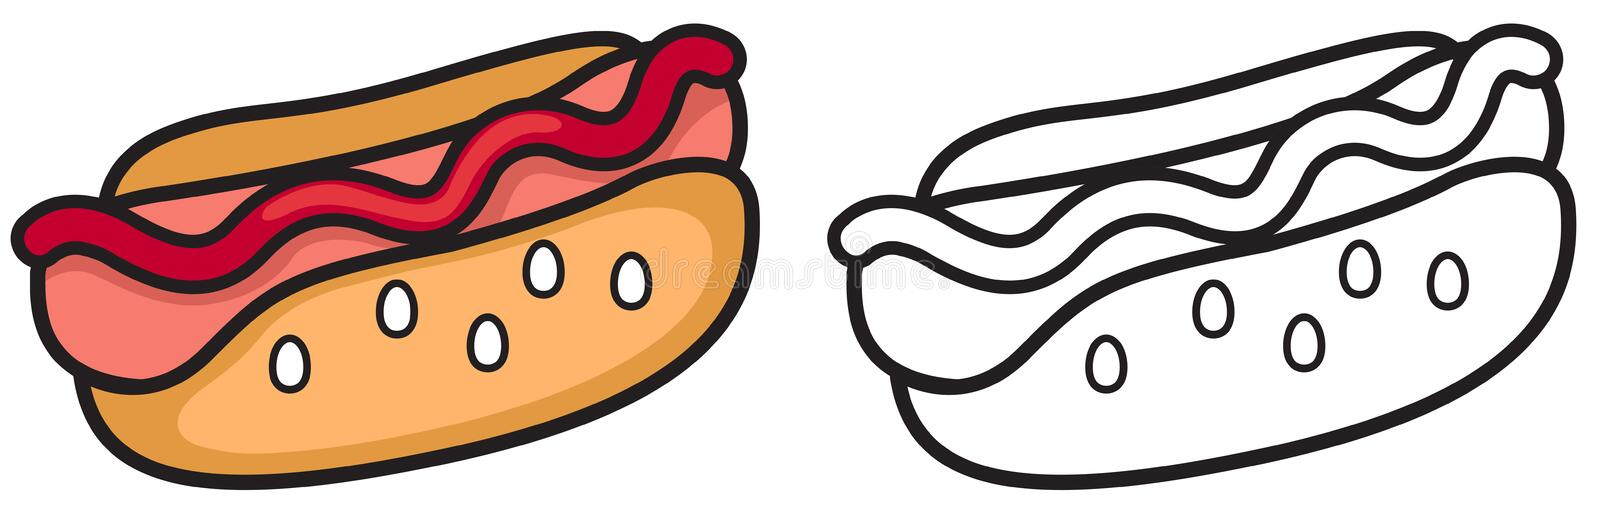 Colorful and black and white hotdog for coloring book royalty free illustration